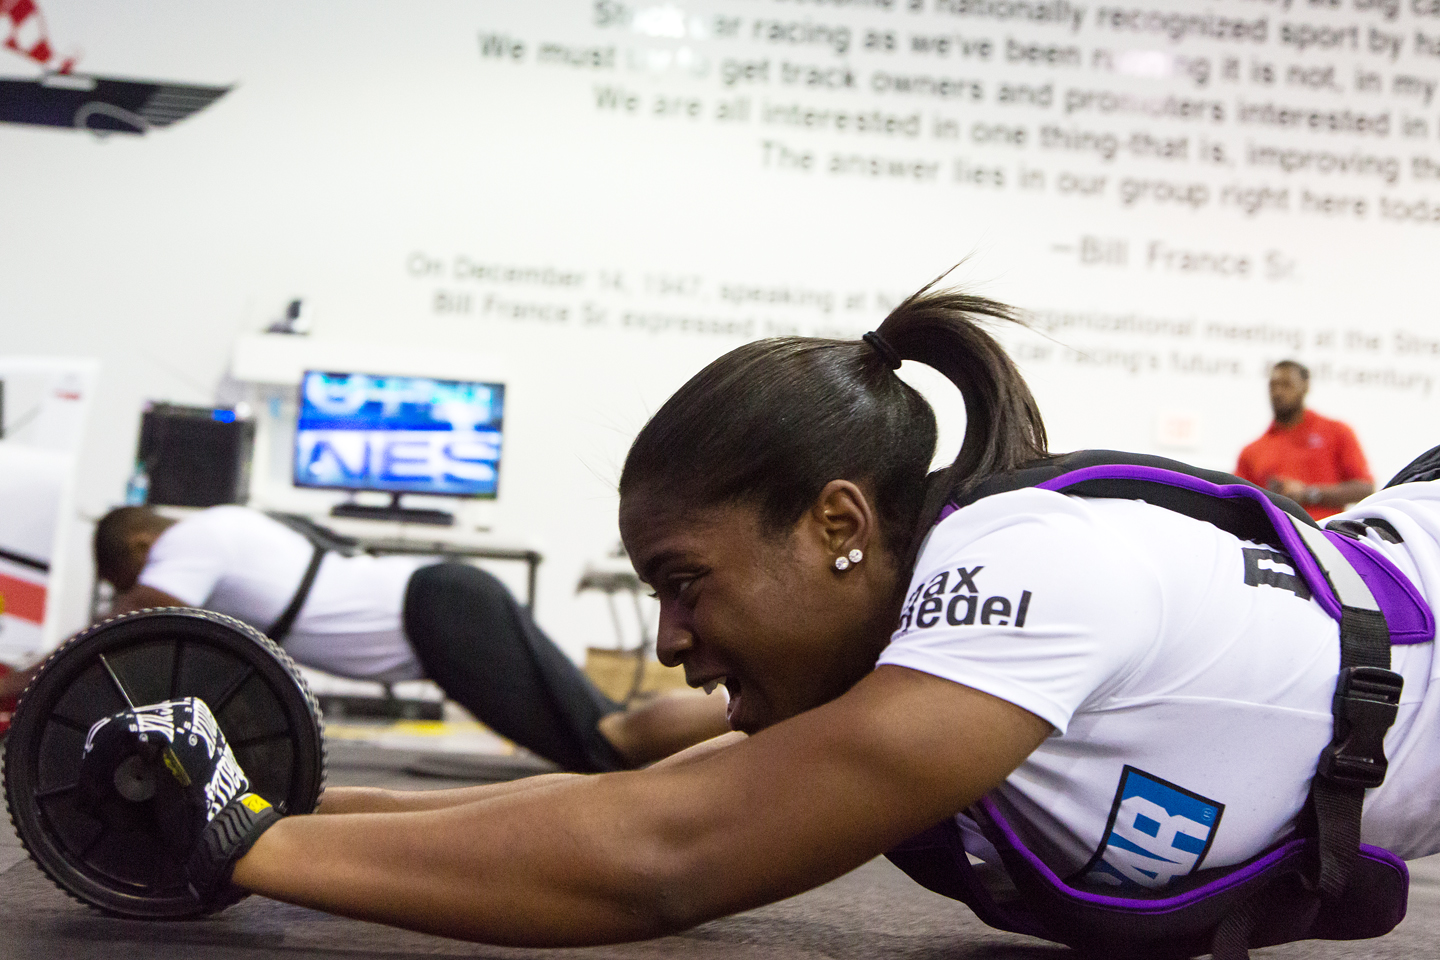 Brehanna Daniels demonstrates core strength skills and conditioning portion of the Drive For Diversity Pit Crew Combine at the NASCAR Research & Development Center in Concord, NC.